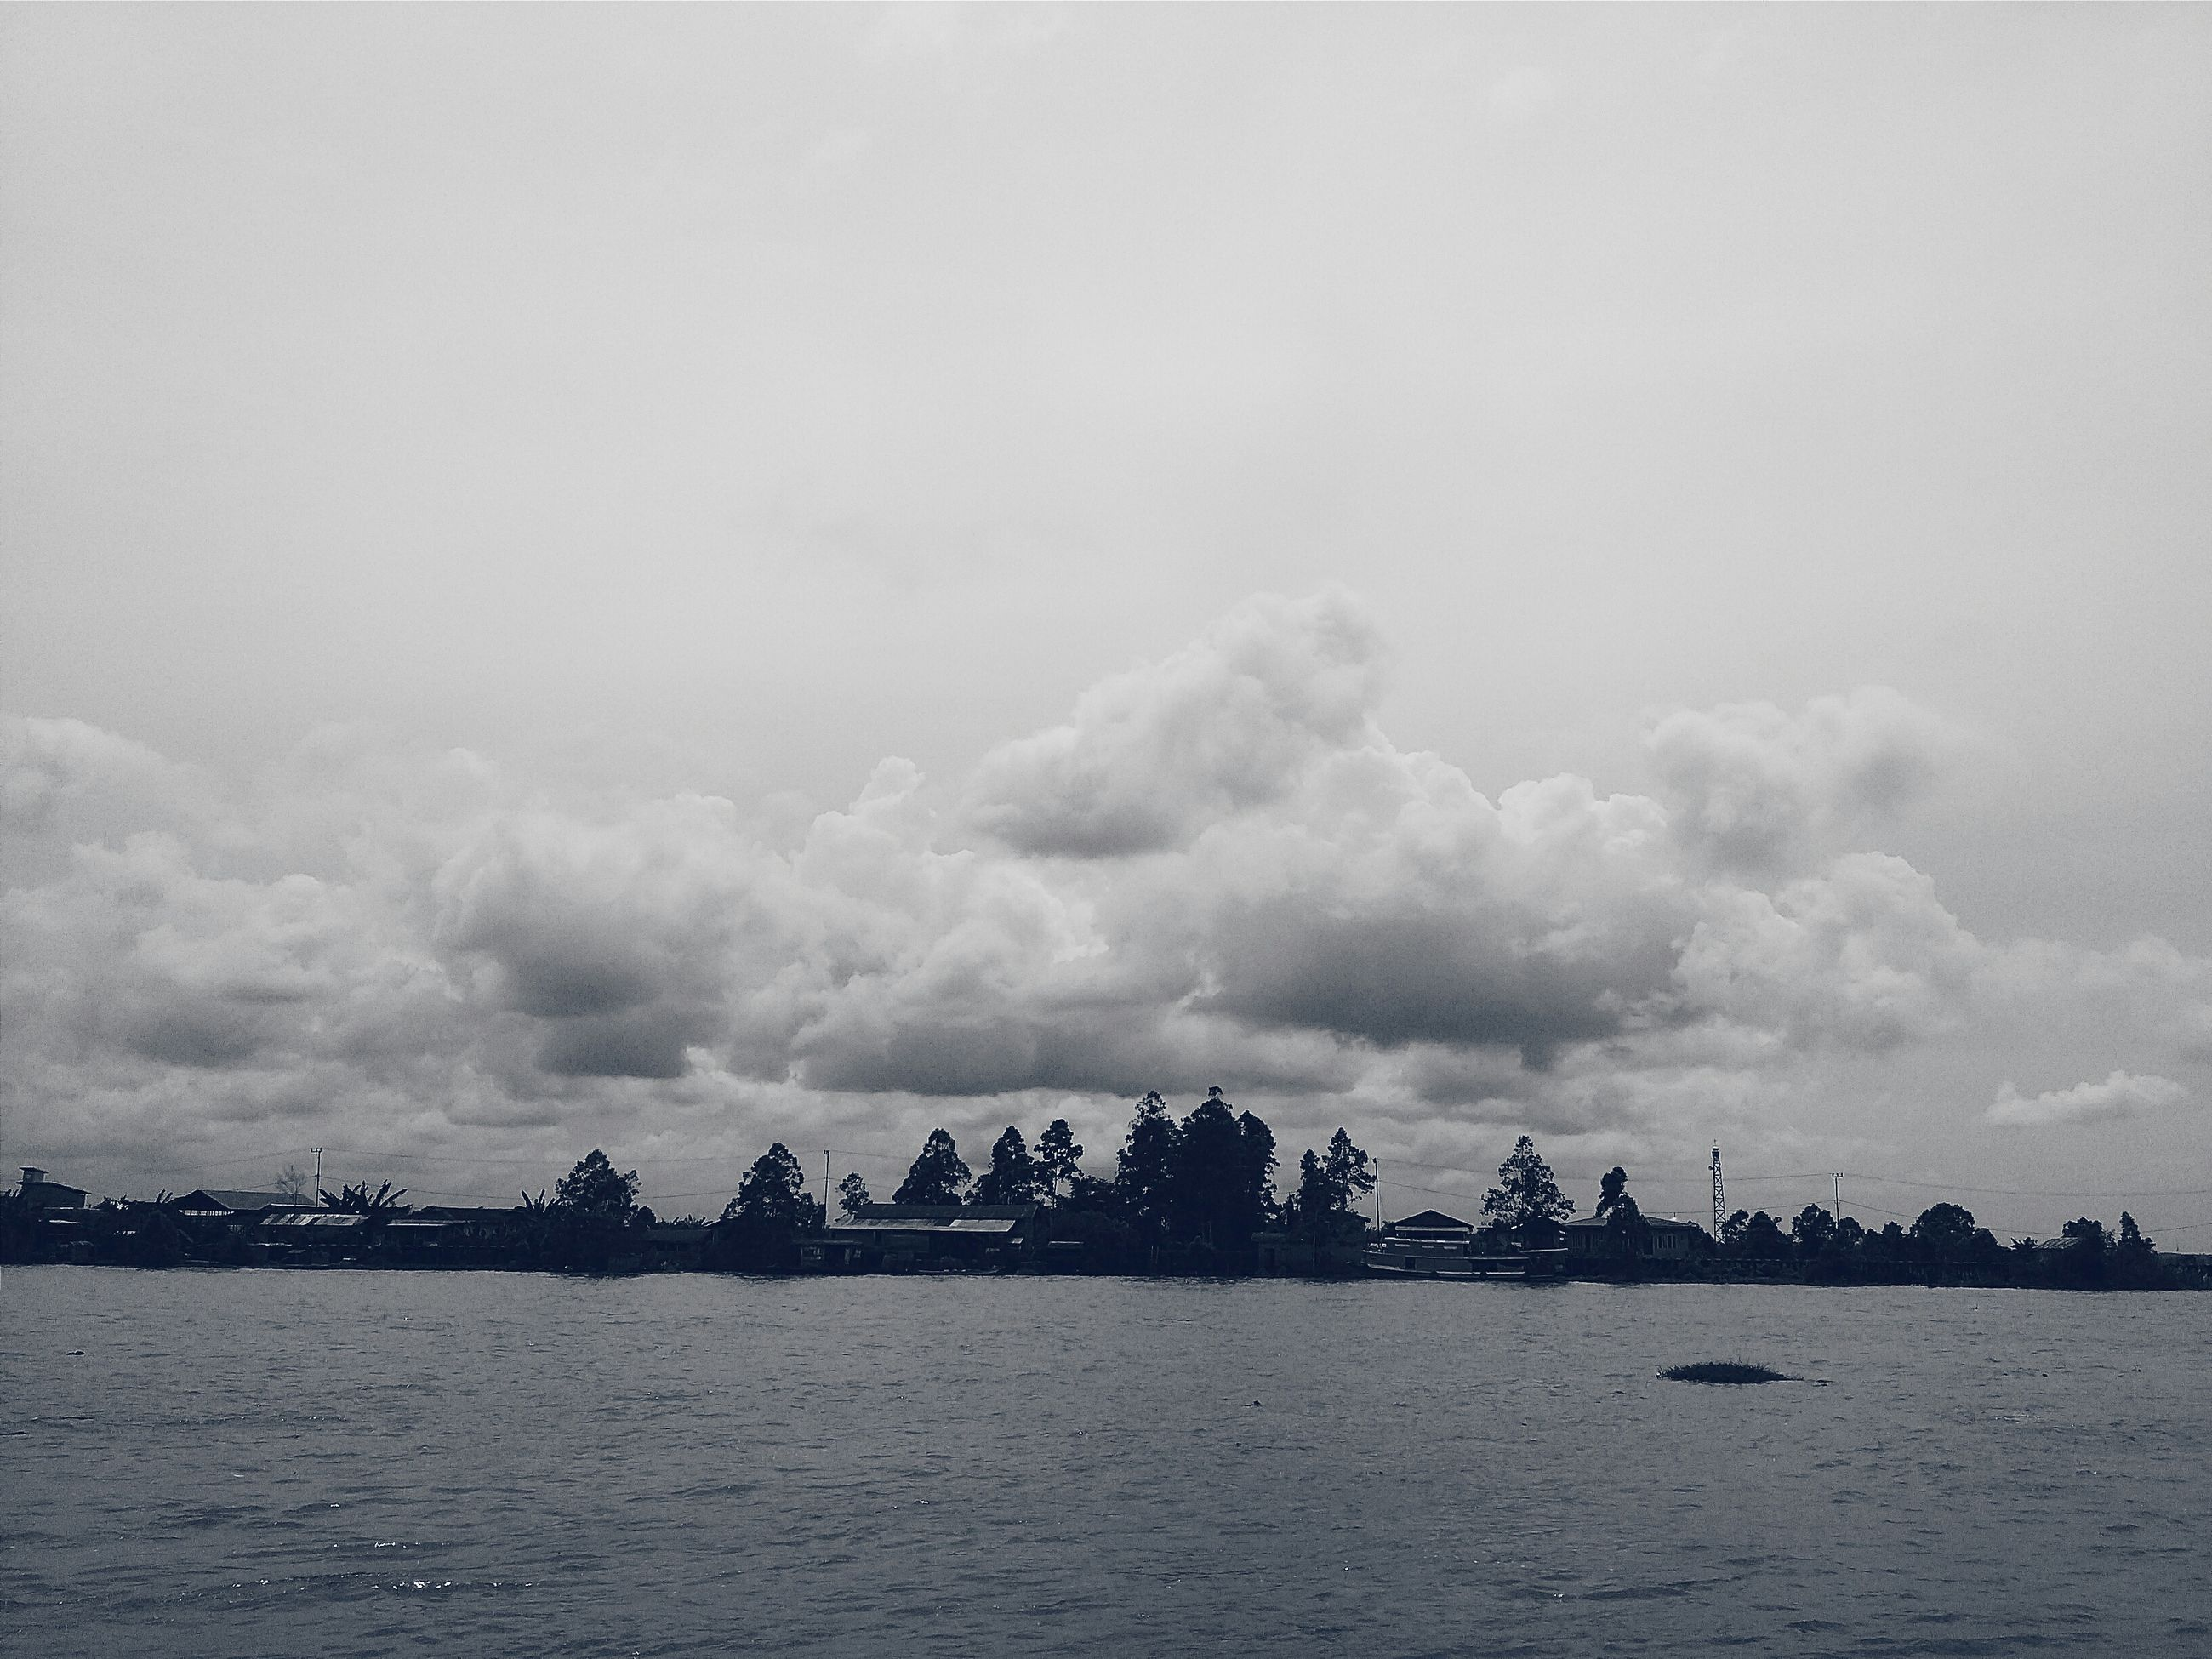 sky, water, cloud - sky, silhouette, waterfront, sea, tranquility, tranquil scene, scenics, nature, beauty in nature, cloudy, overcast, weather, copy space, dusk, cloud, outdoors, idyllic, large group of people